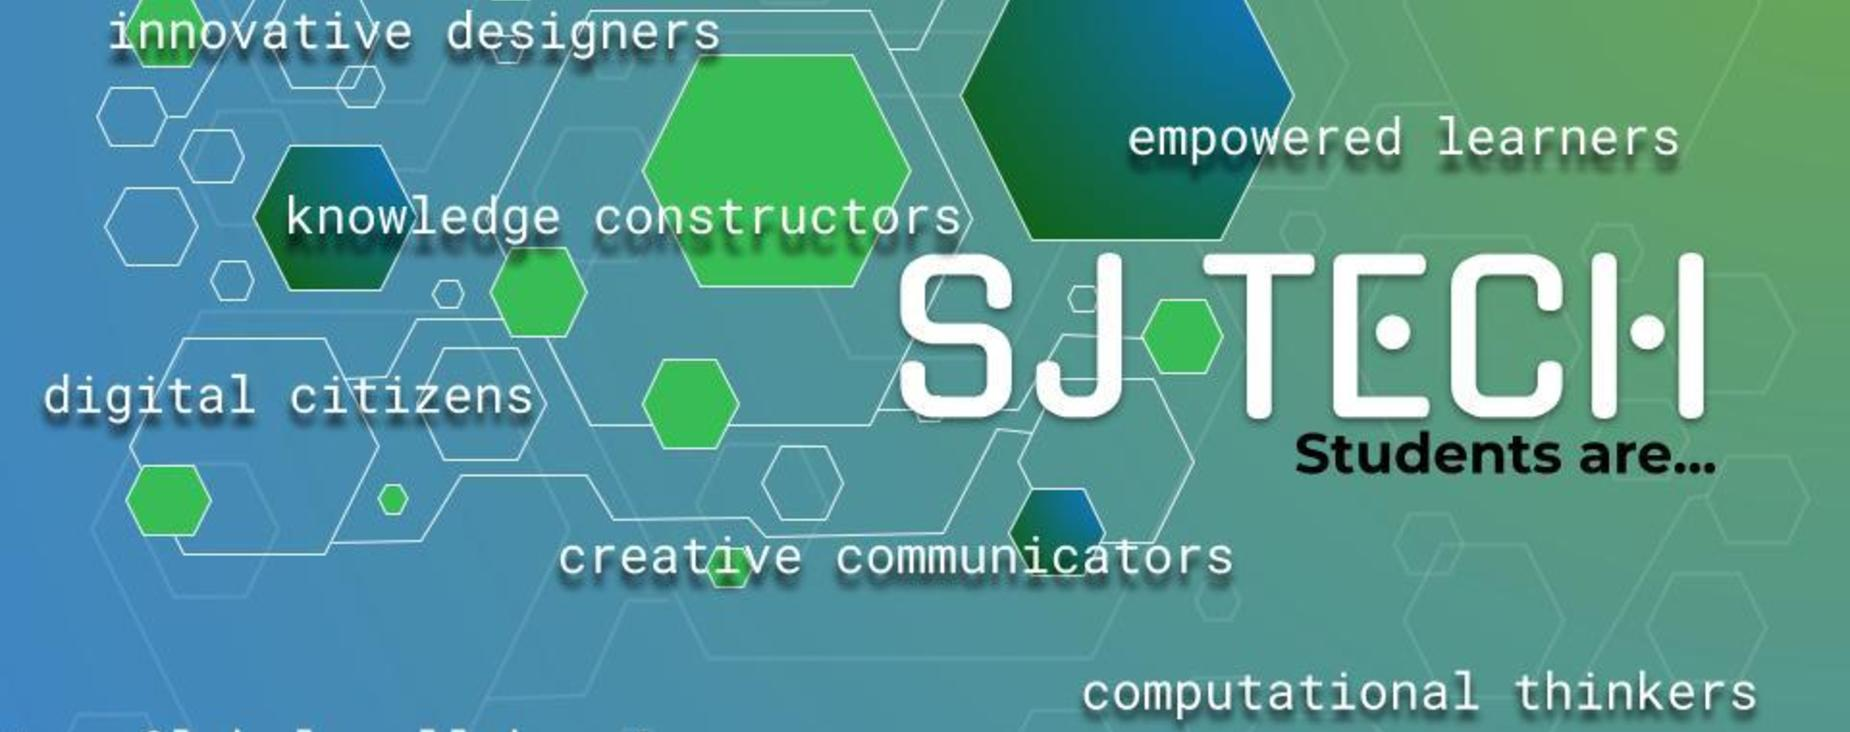 SJ Tech students are innovative designers, empowered learners, knowledge constructors, digital citizens, creative communicators